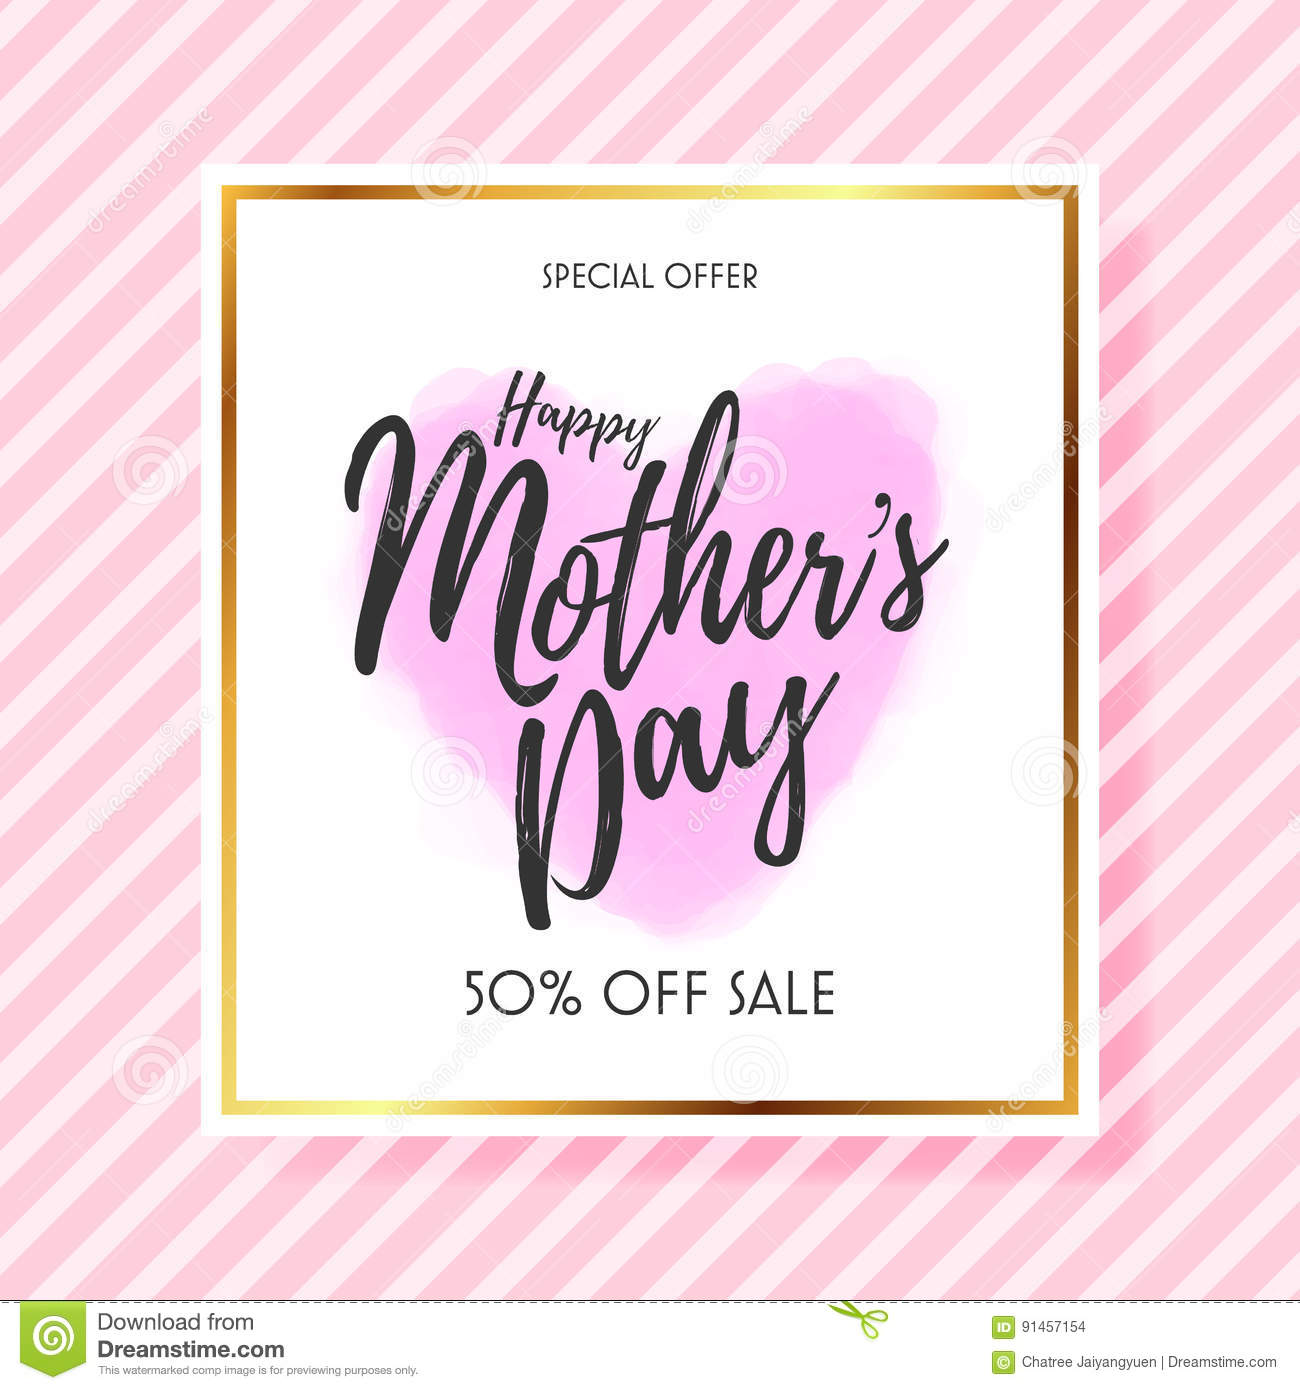 Mothers Day Storewide Sale Template: Mothers Day Sale Background Layout For Banners Stock